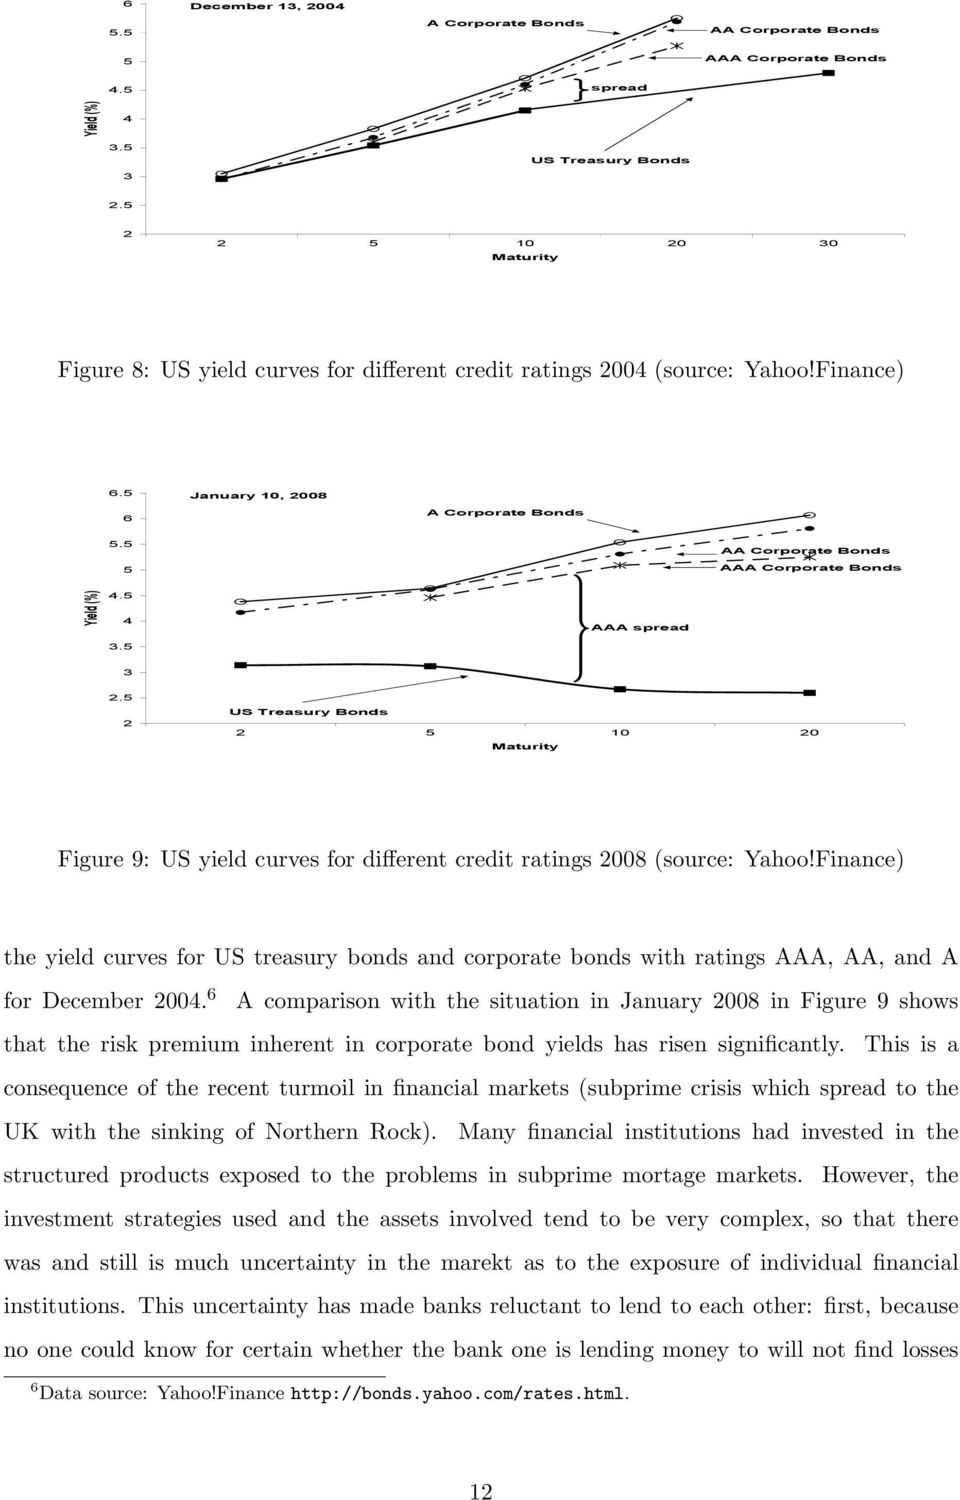 US Treasury Bonds 10 0 Figure 9: US yield curves for different credit ratings 008 (source: Yahoo!